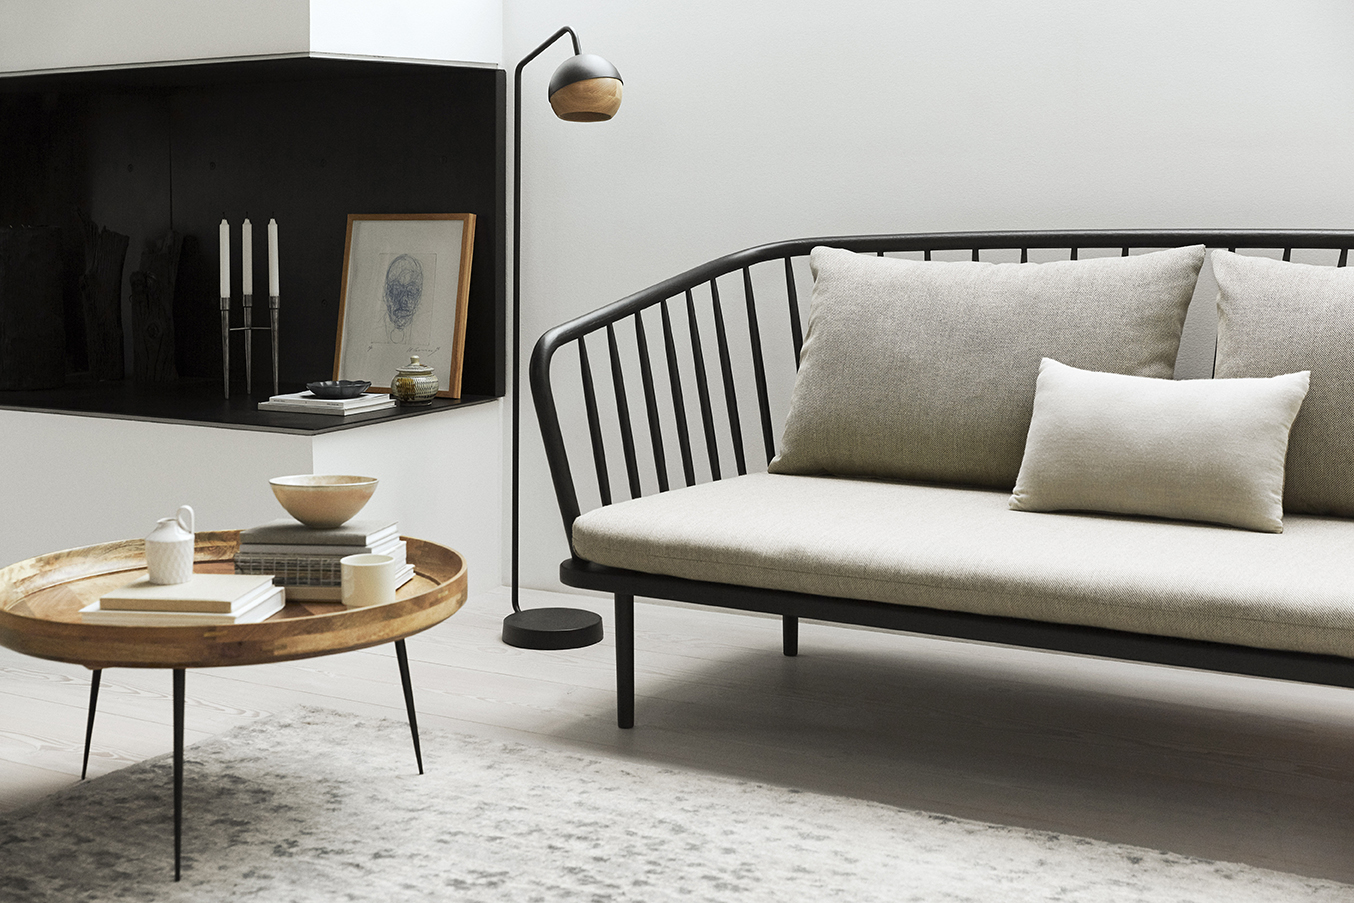 Mollis Sofa and Bowl table from Mater Design